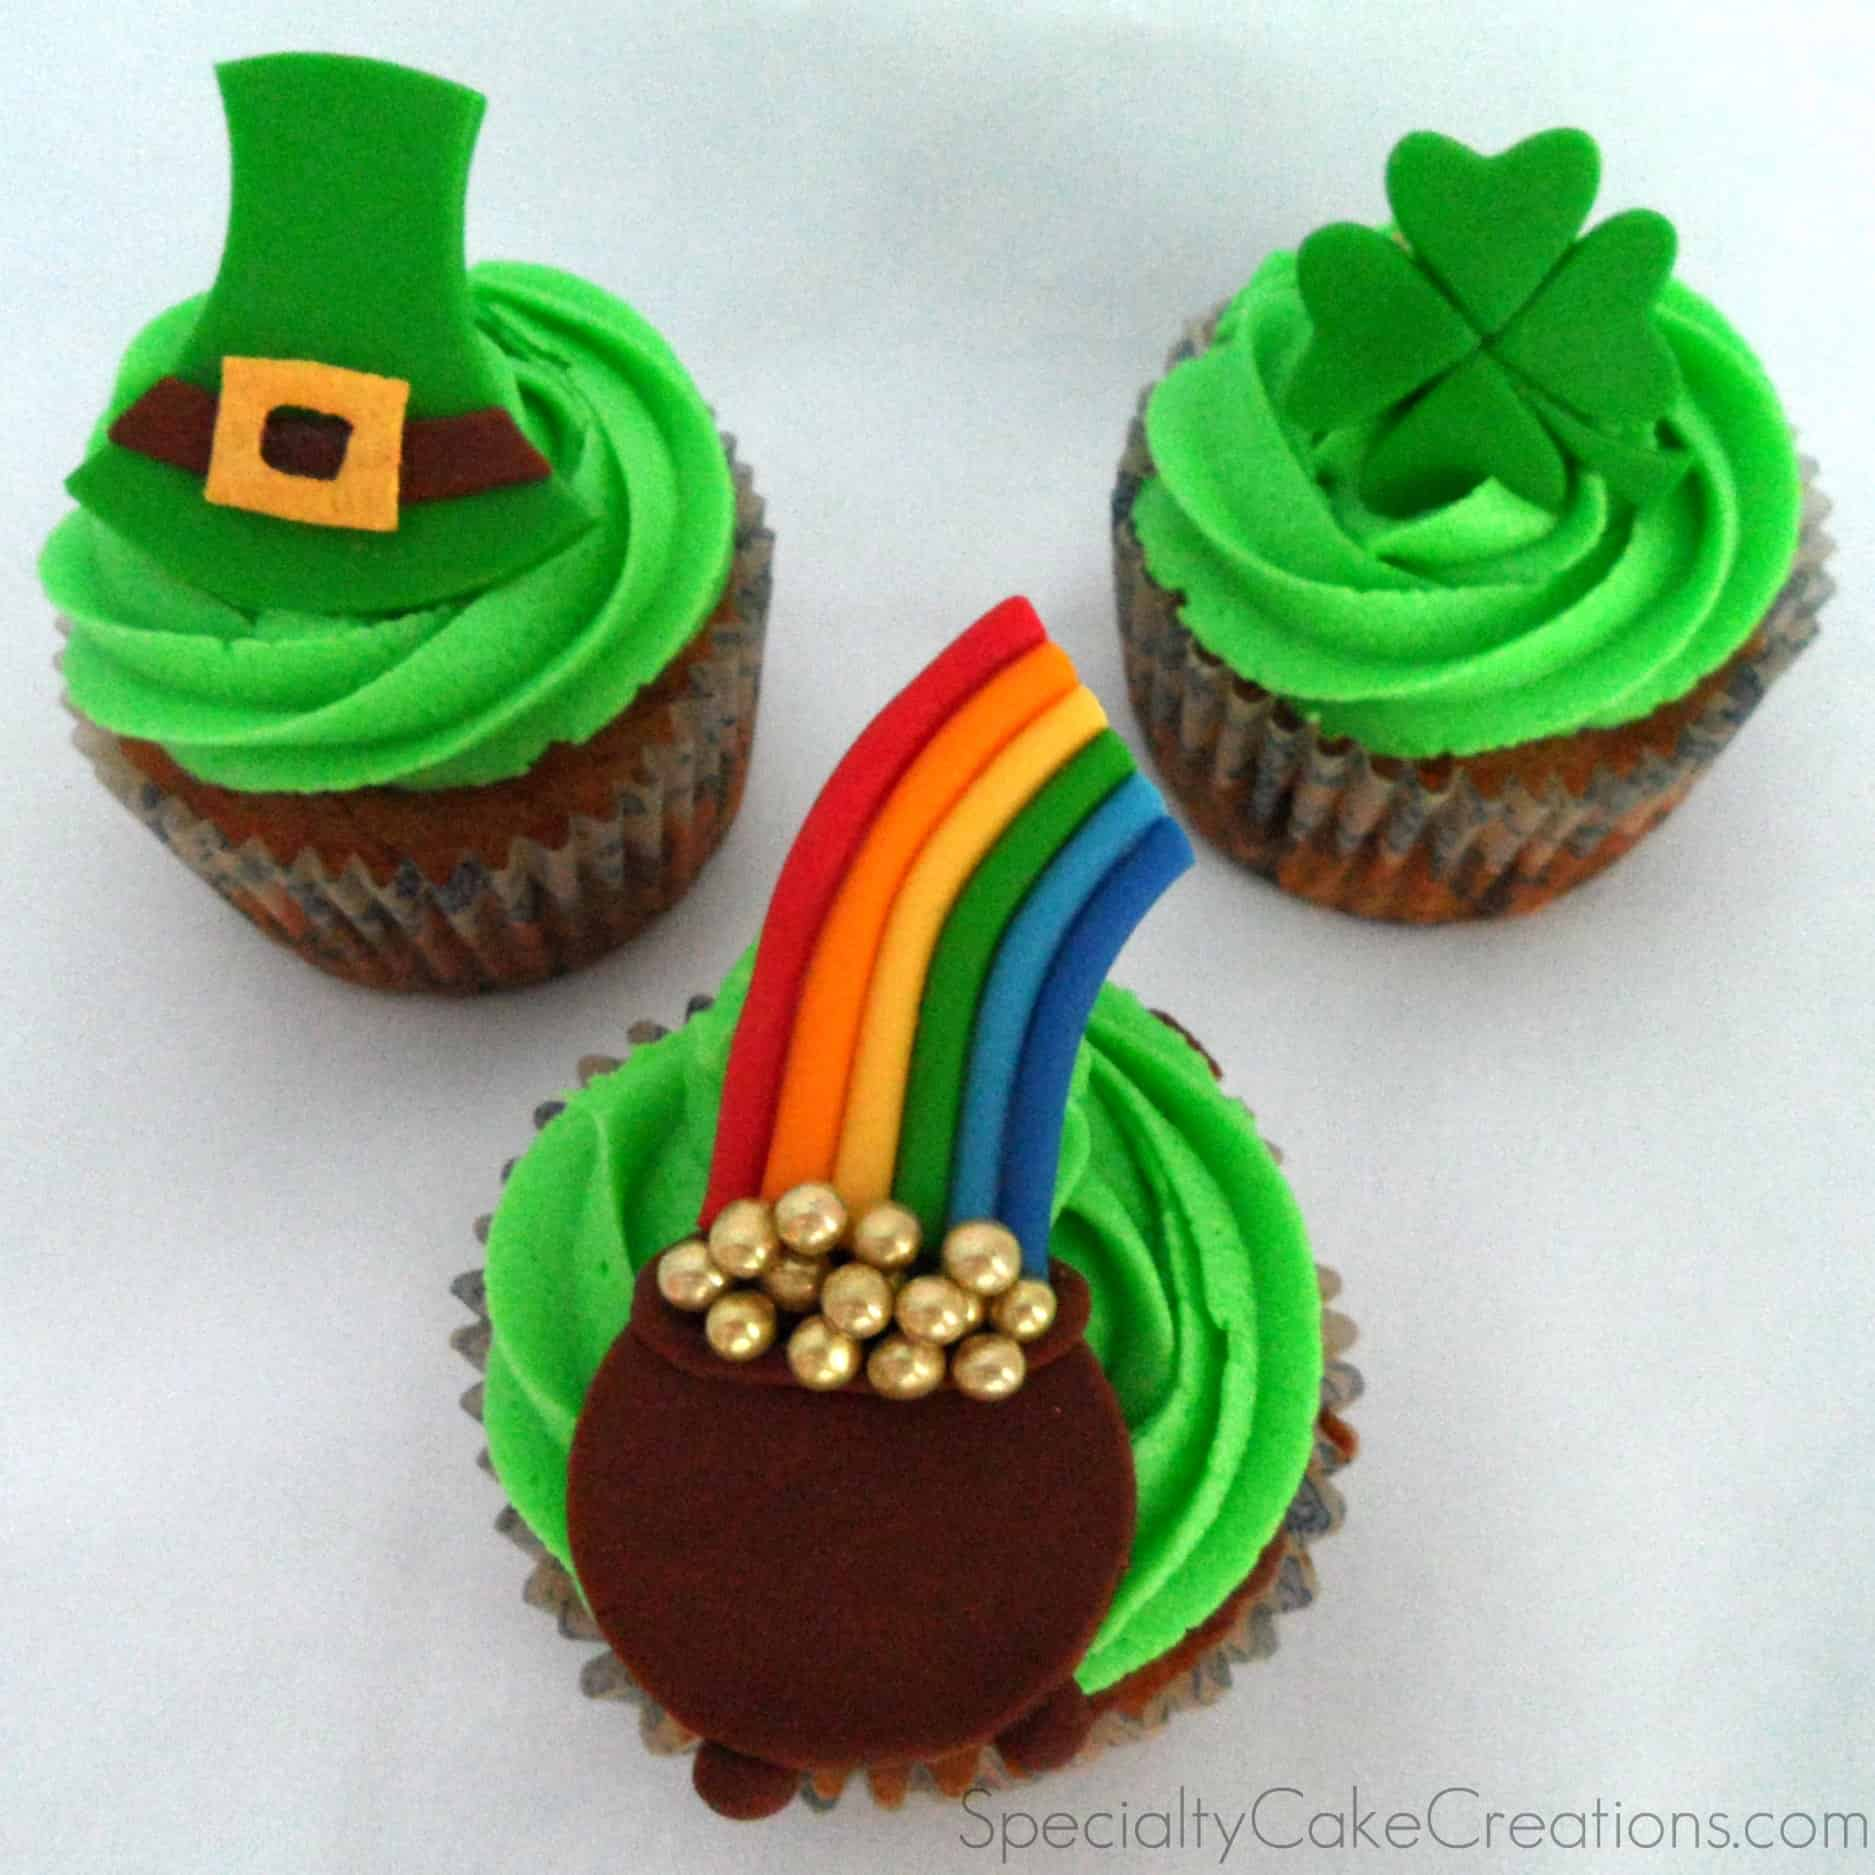 How To Make A Shamrock Cake Out Of Cupcakes